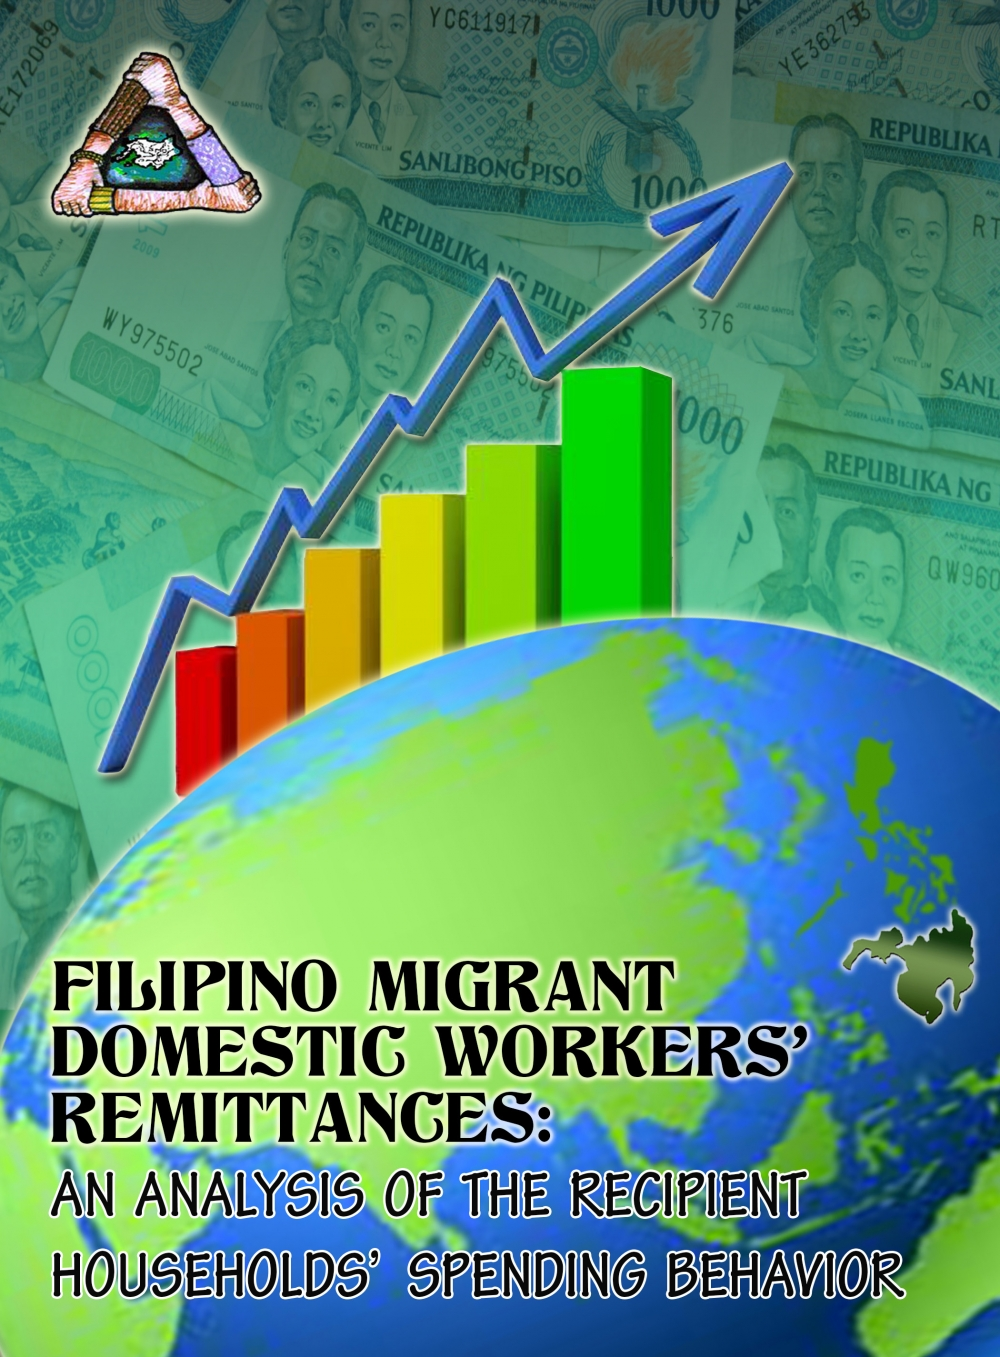 Filipino Migrant Domestic Workers' Remittances